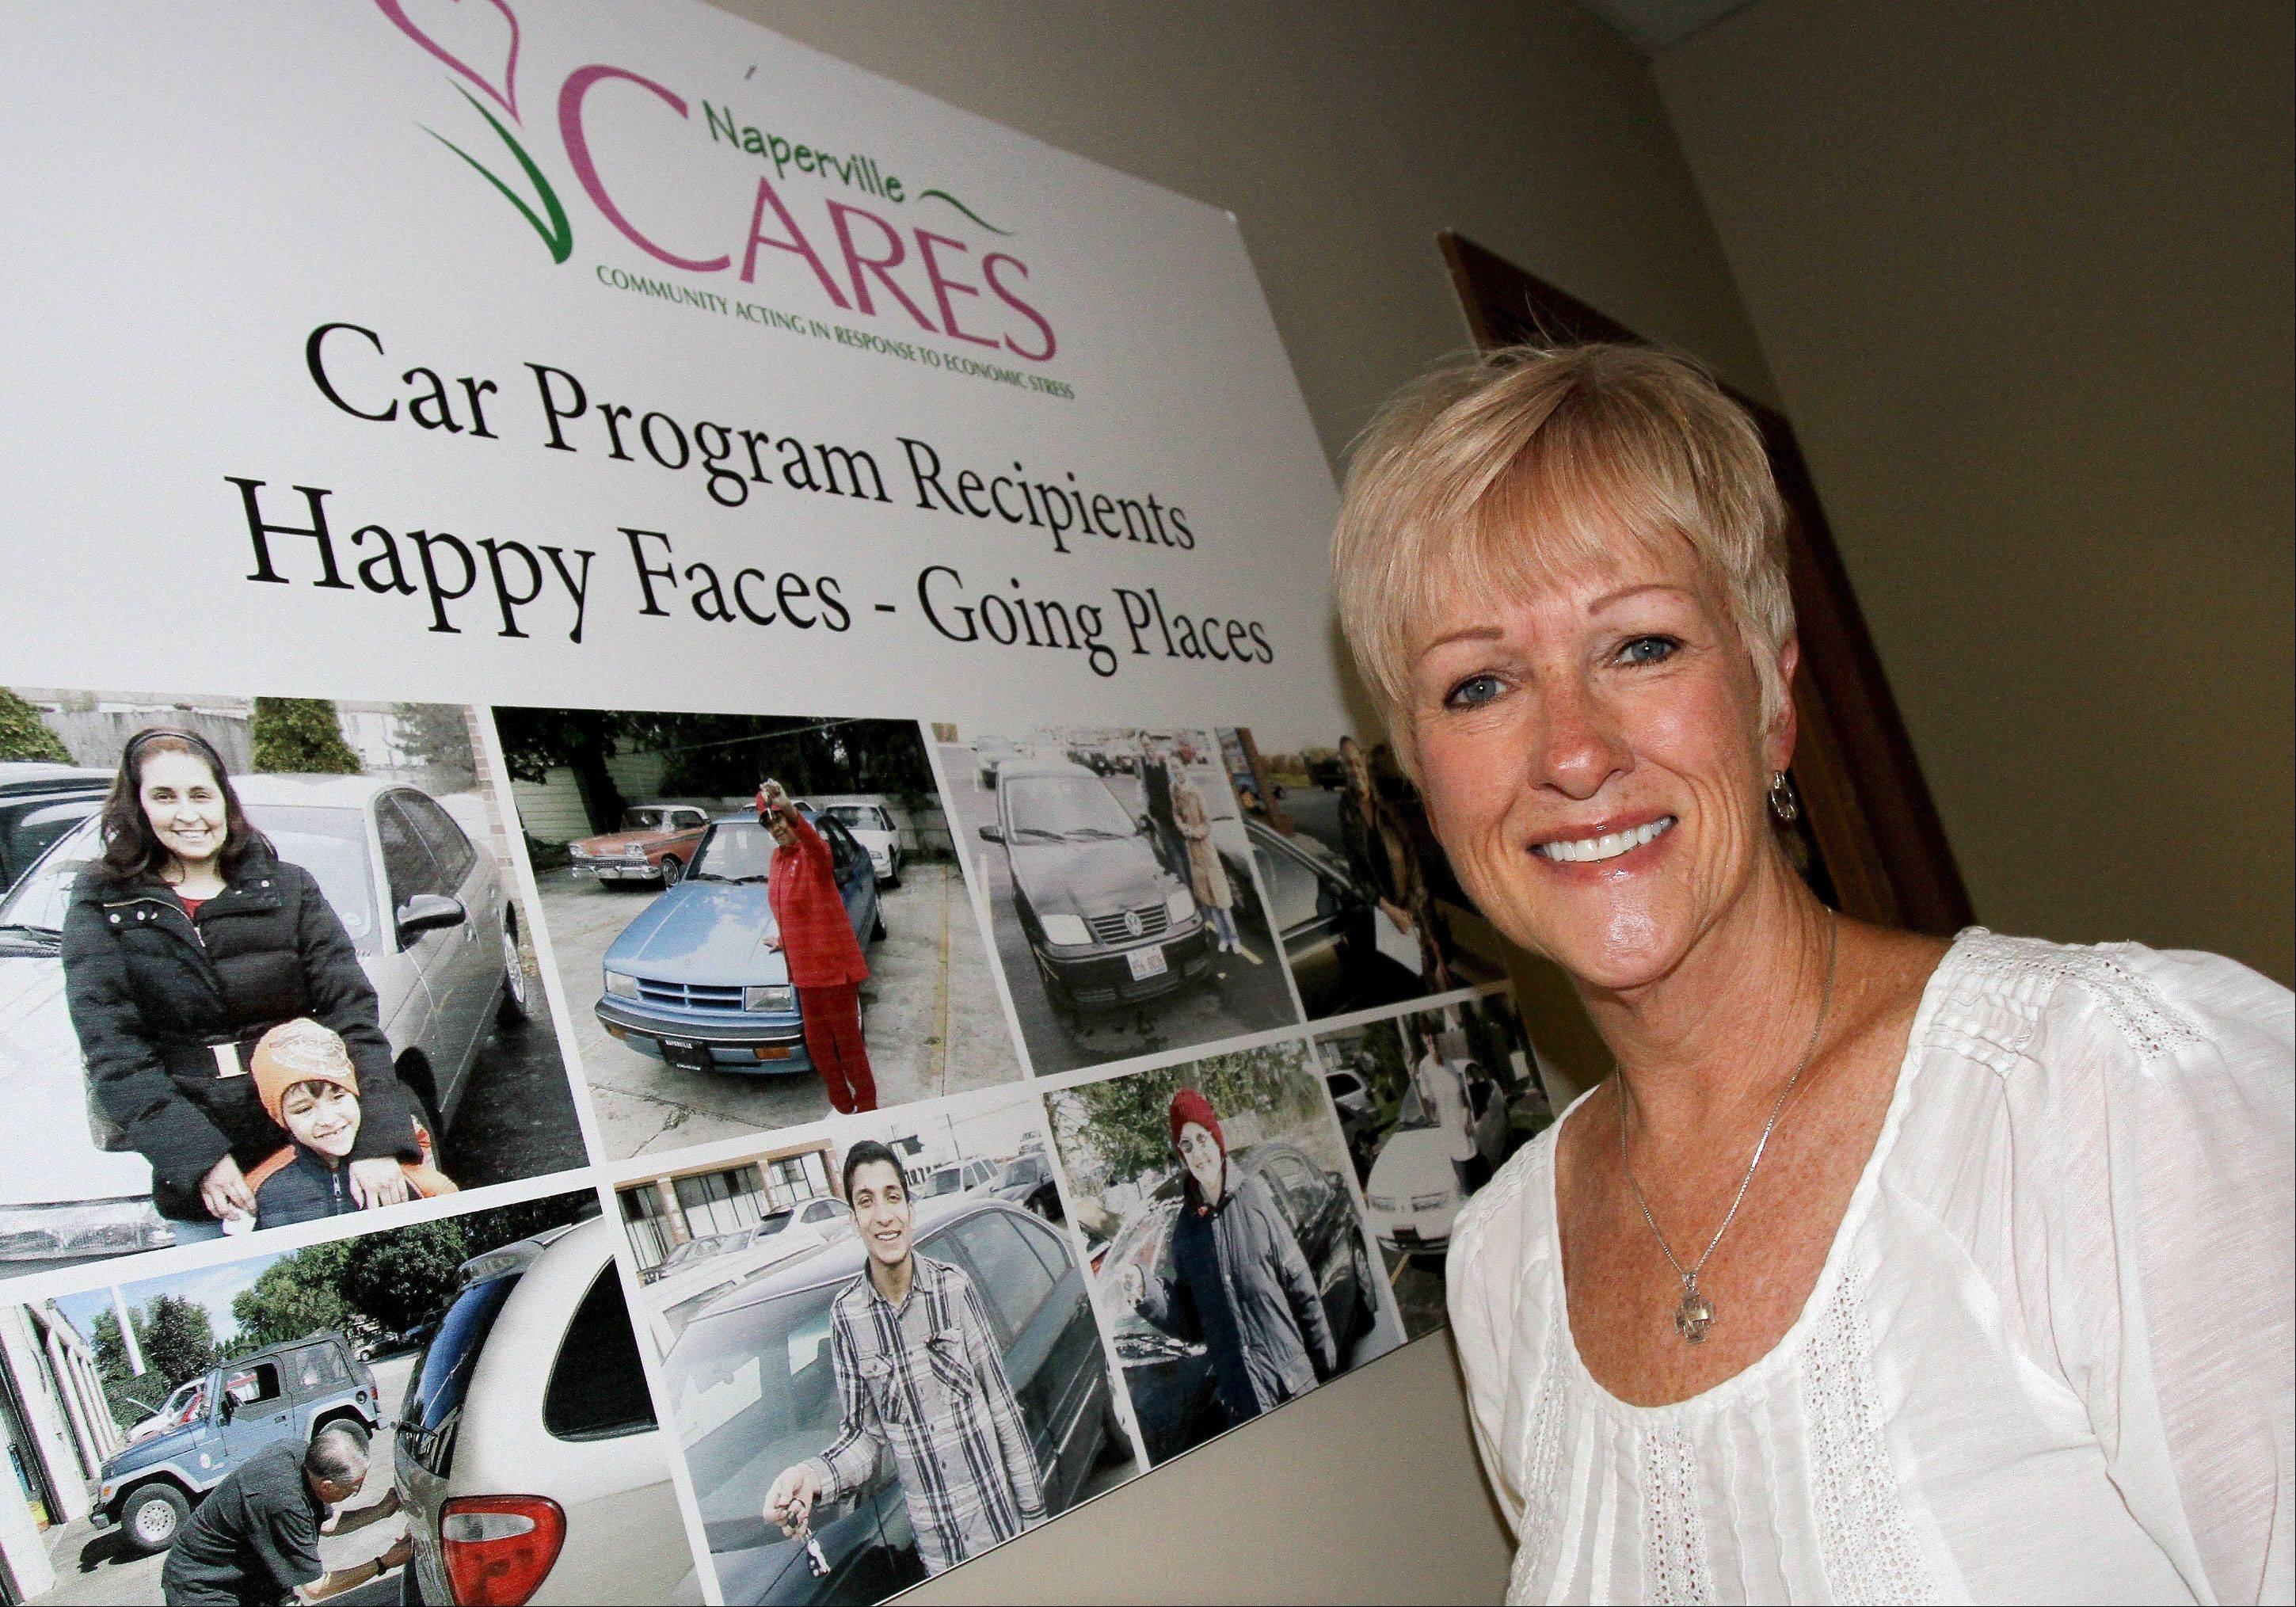 Naperville resident Jeneane Ryan recently received the Volunteer of the Year award from Naperville CARES. She spends five or six hours a week with the organization helping people in financial need find solutions to their dilemmas.